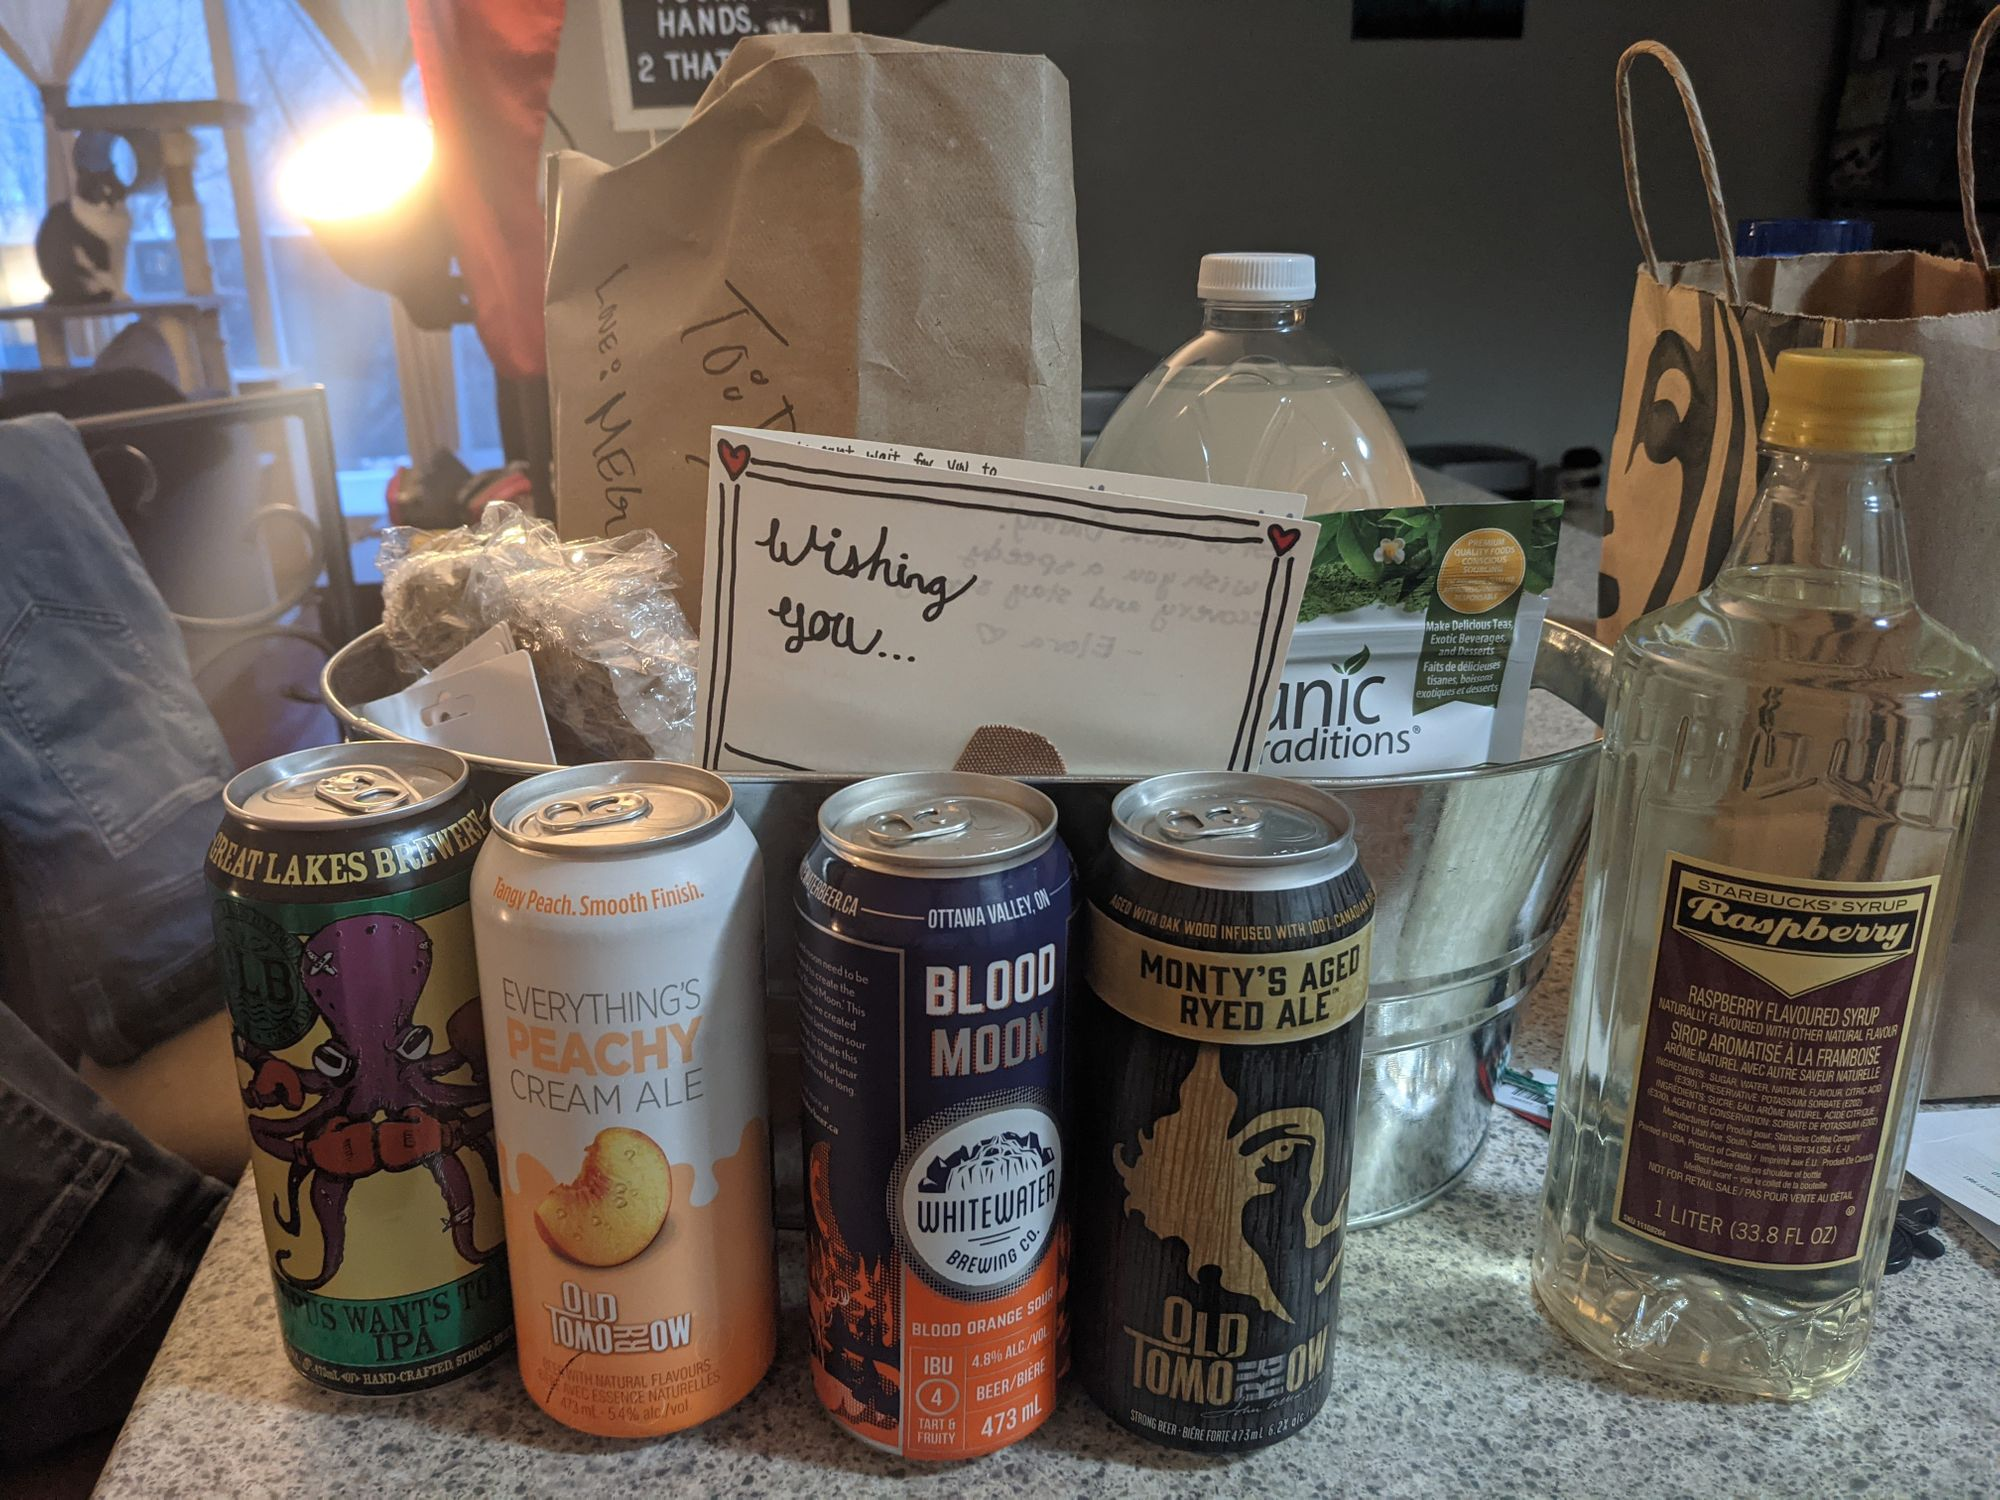 A gift basket with various items: four individual cans of beer & cider, raspberry sugar syrup, lemonade, matcha powder, various baked goods.